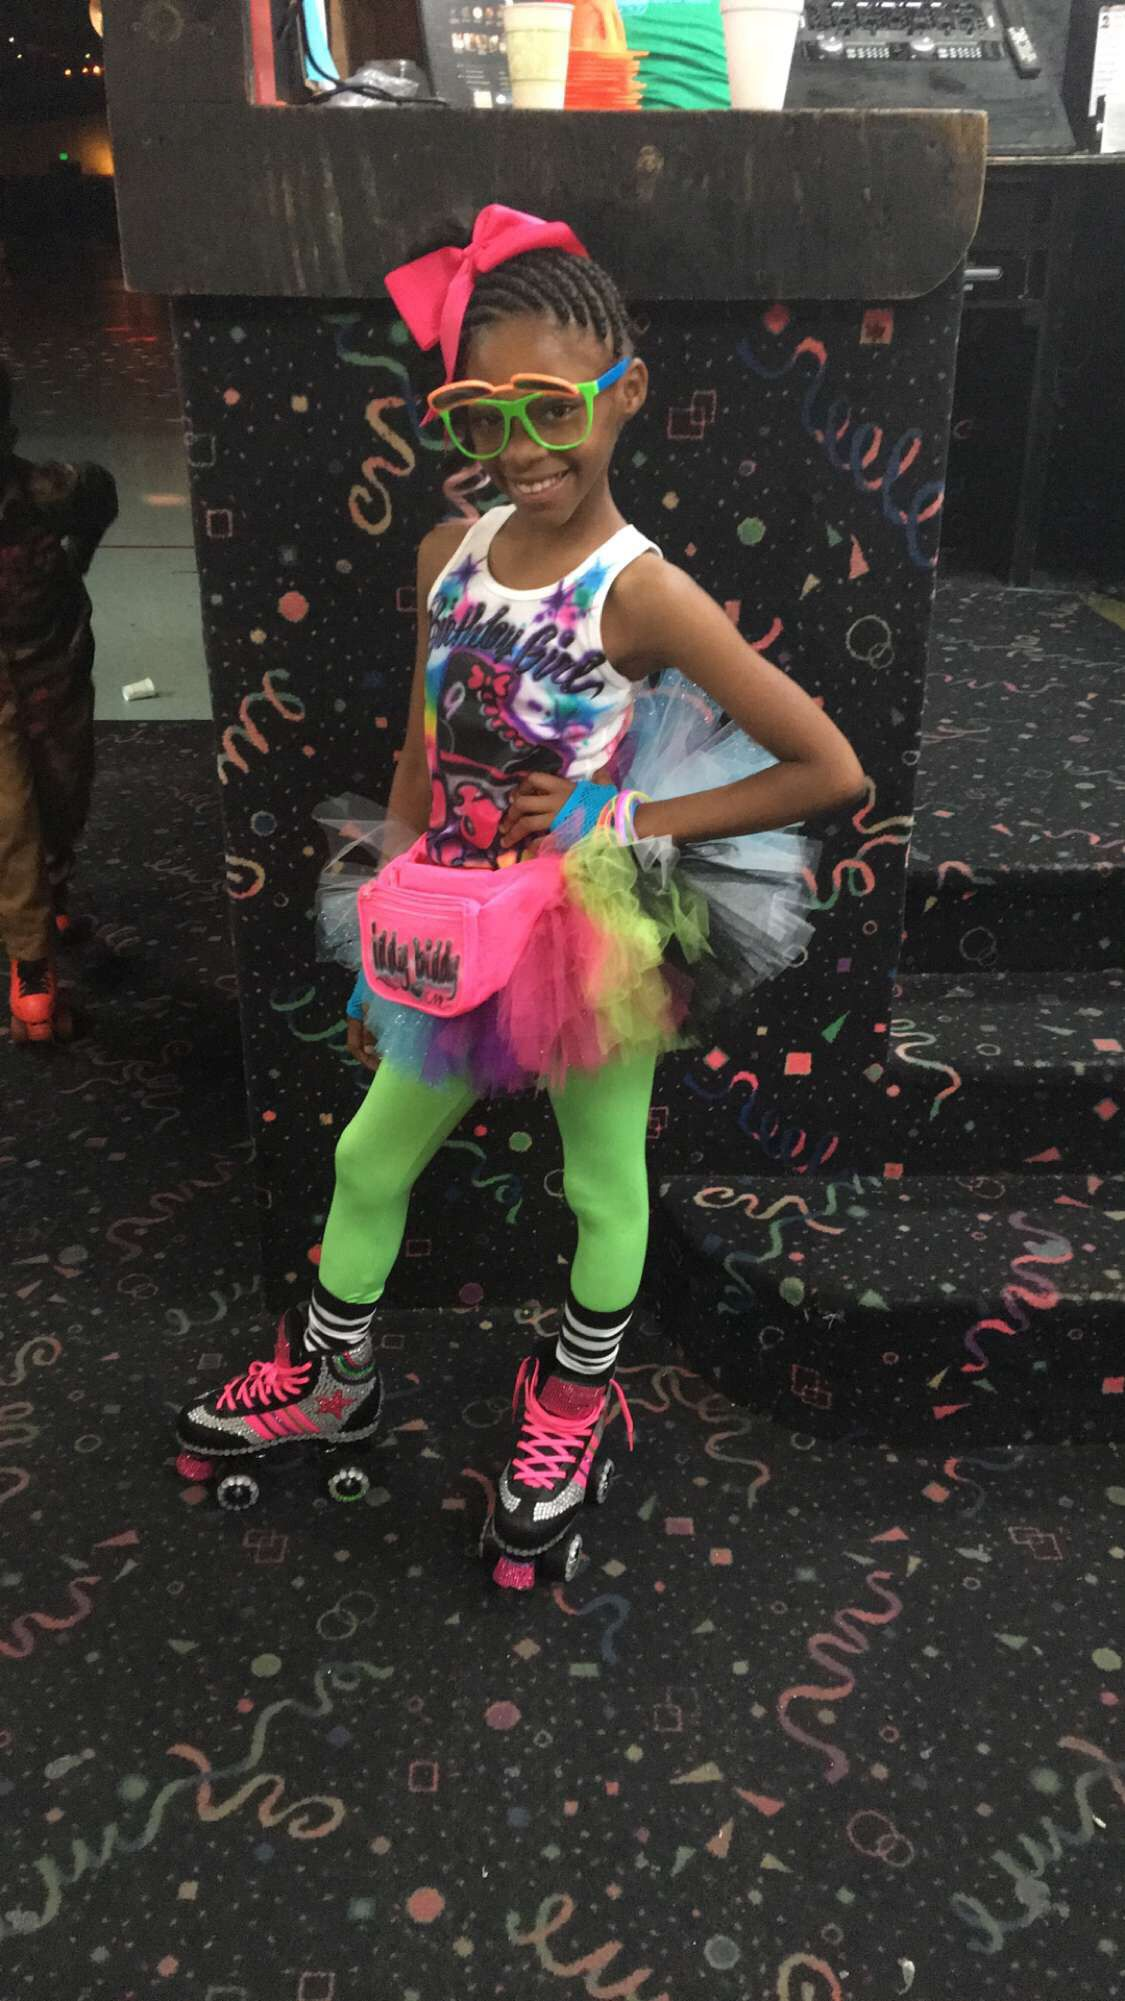 80s theme outfit for girl 80s Roller skate theme outfit